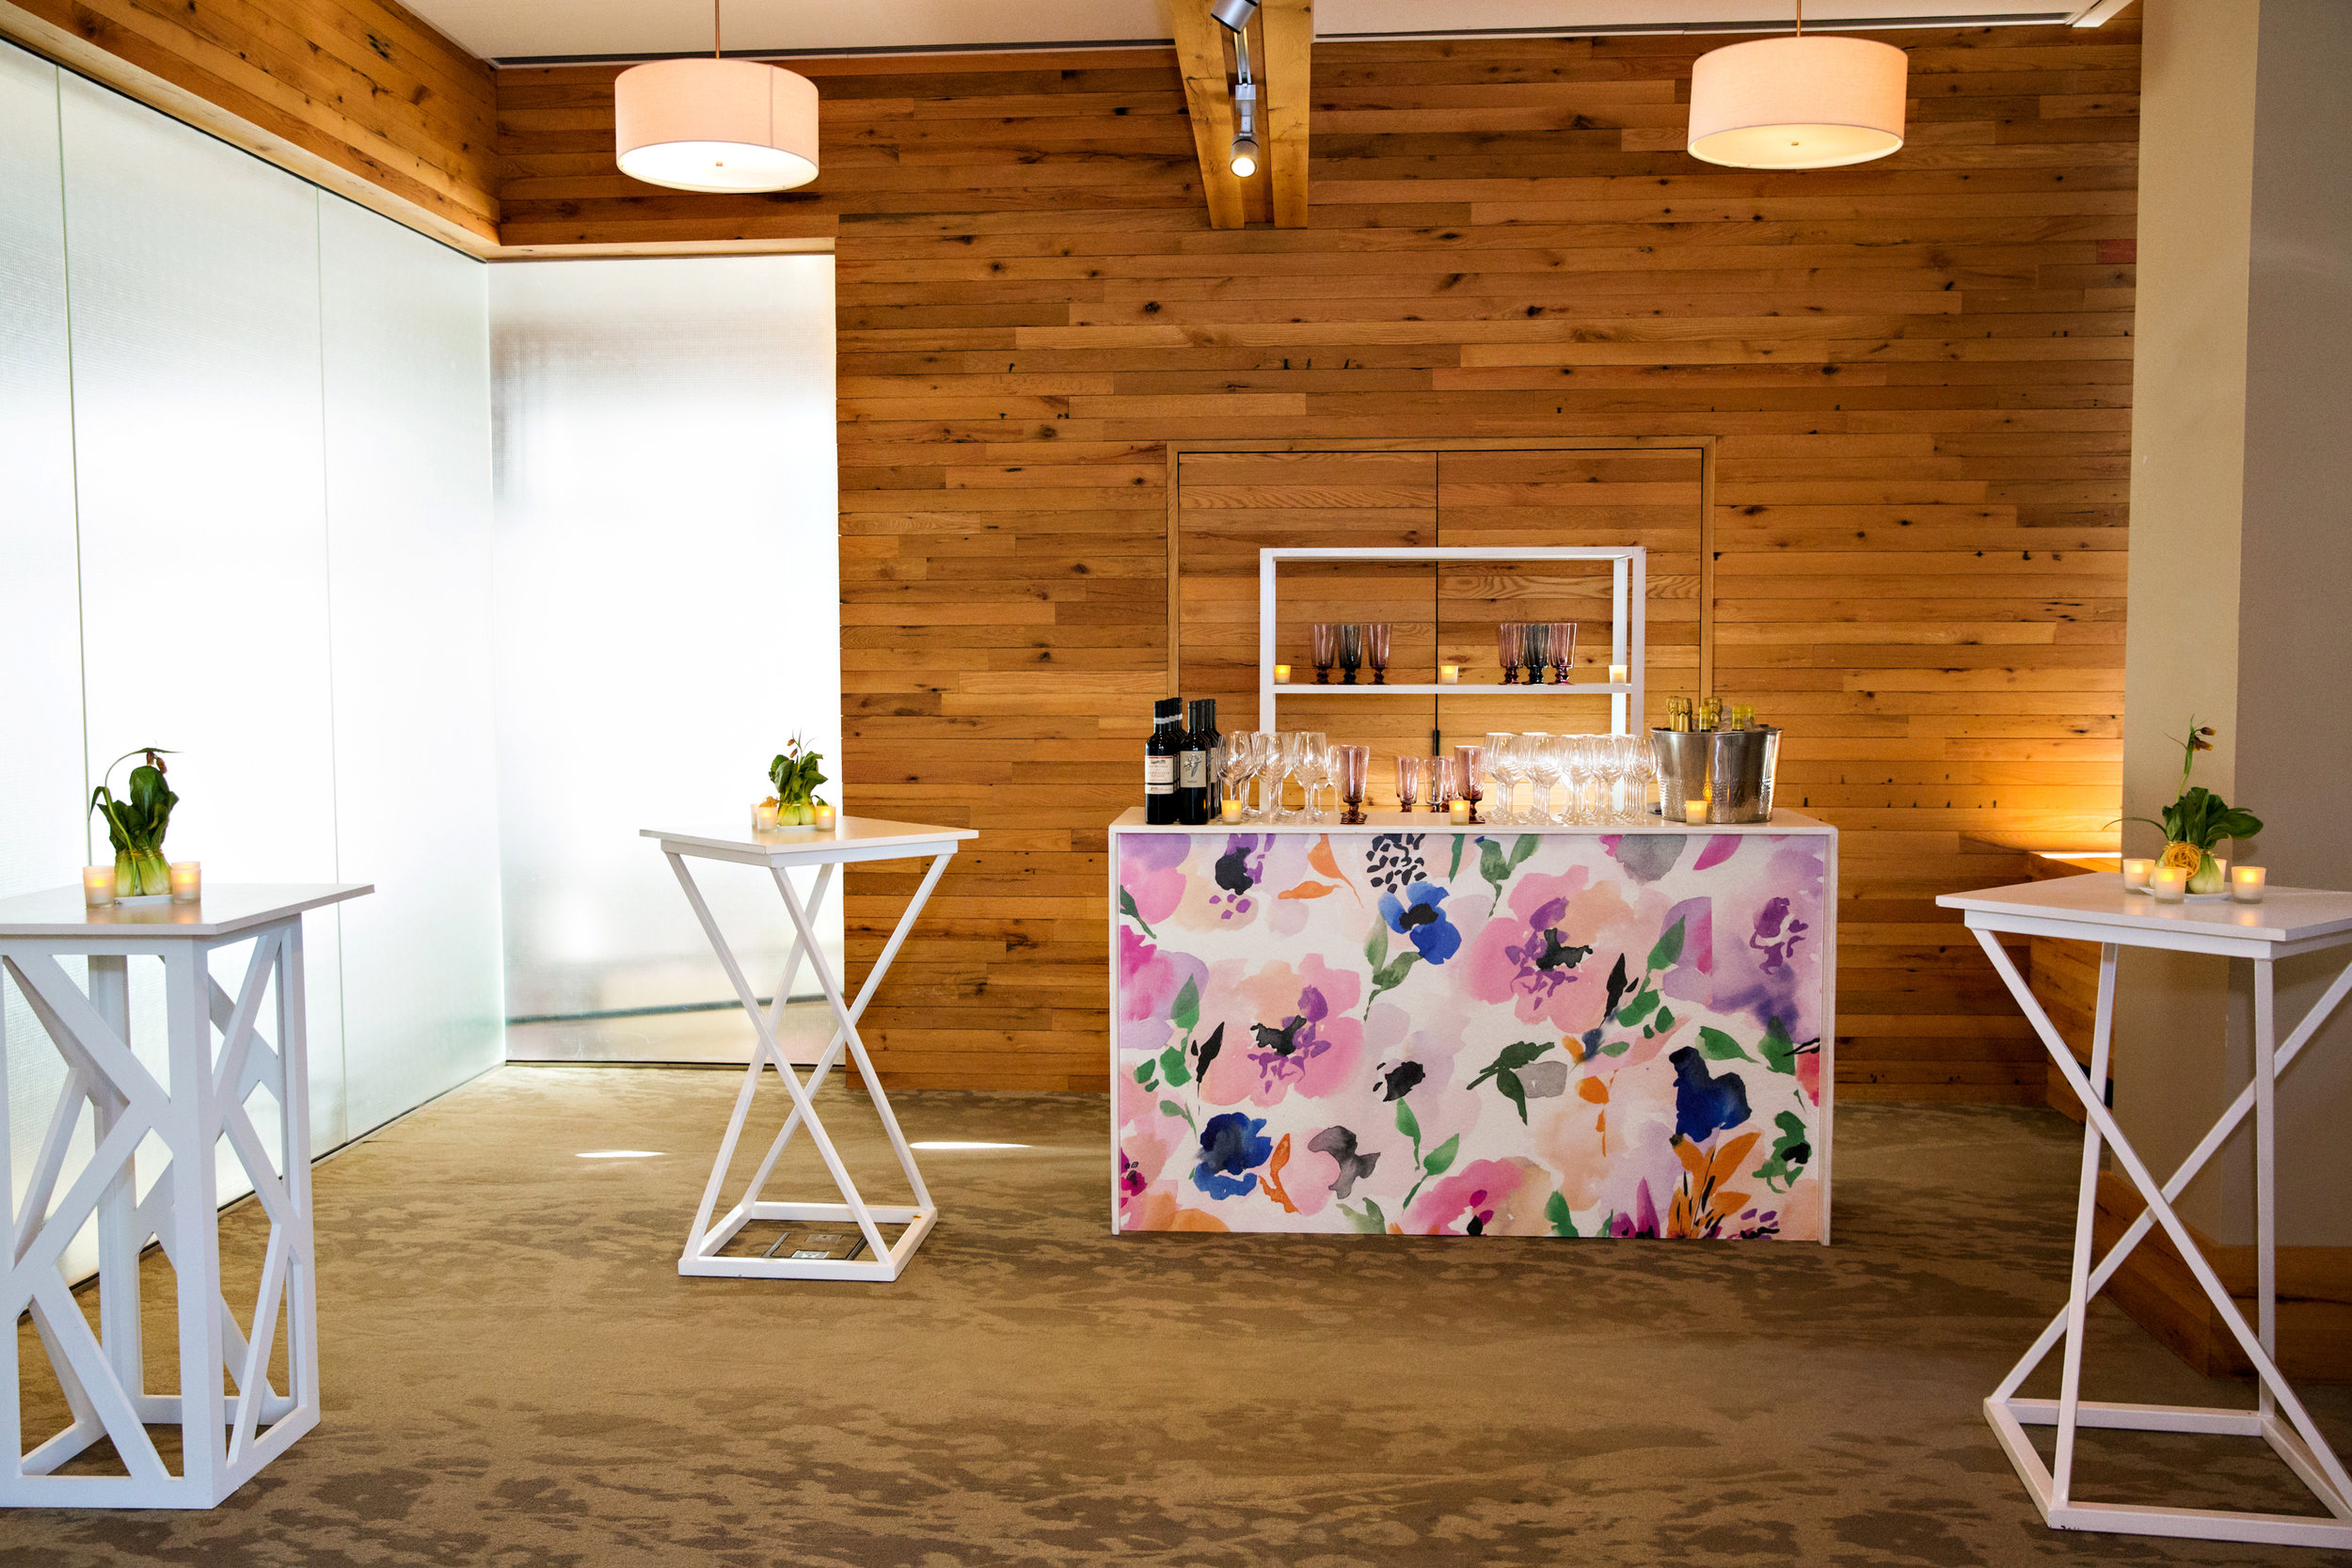 Custom bar by PBD Events, using Fete's artwork. Photo by Person + Killian Photography